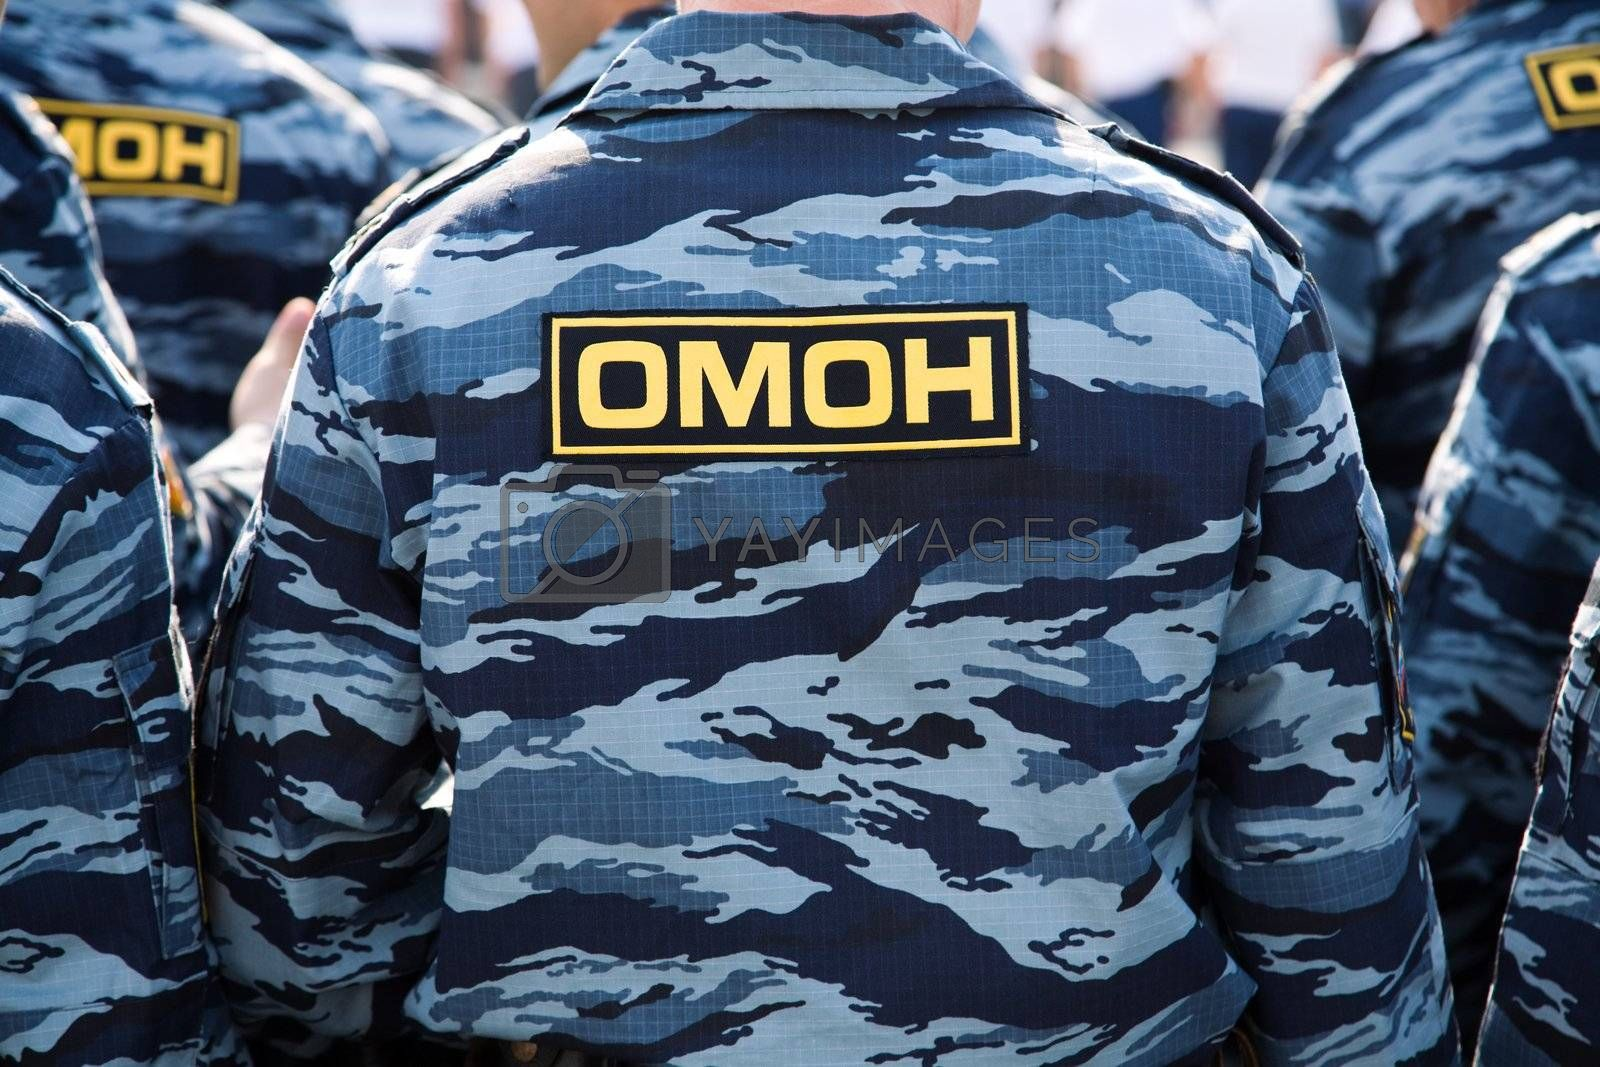 OMON (Russian special police squad) by Kuzma